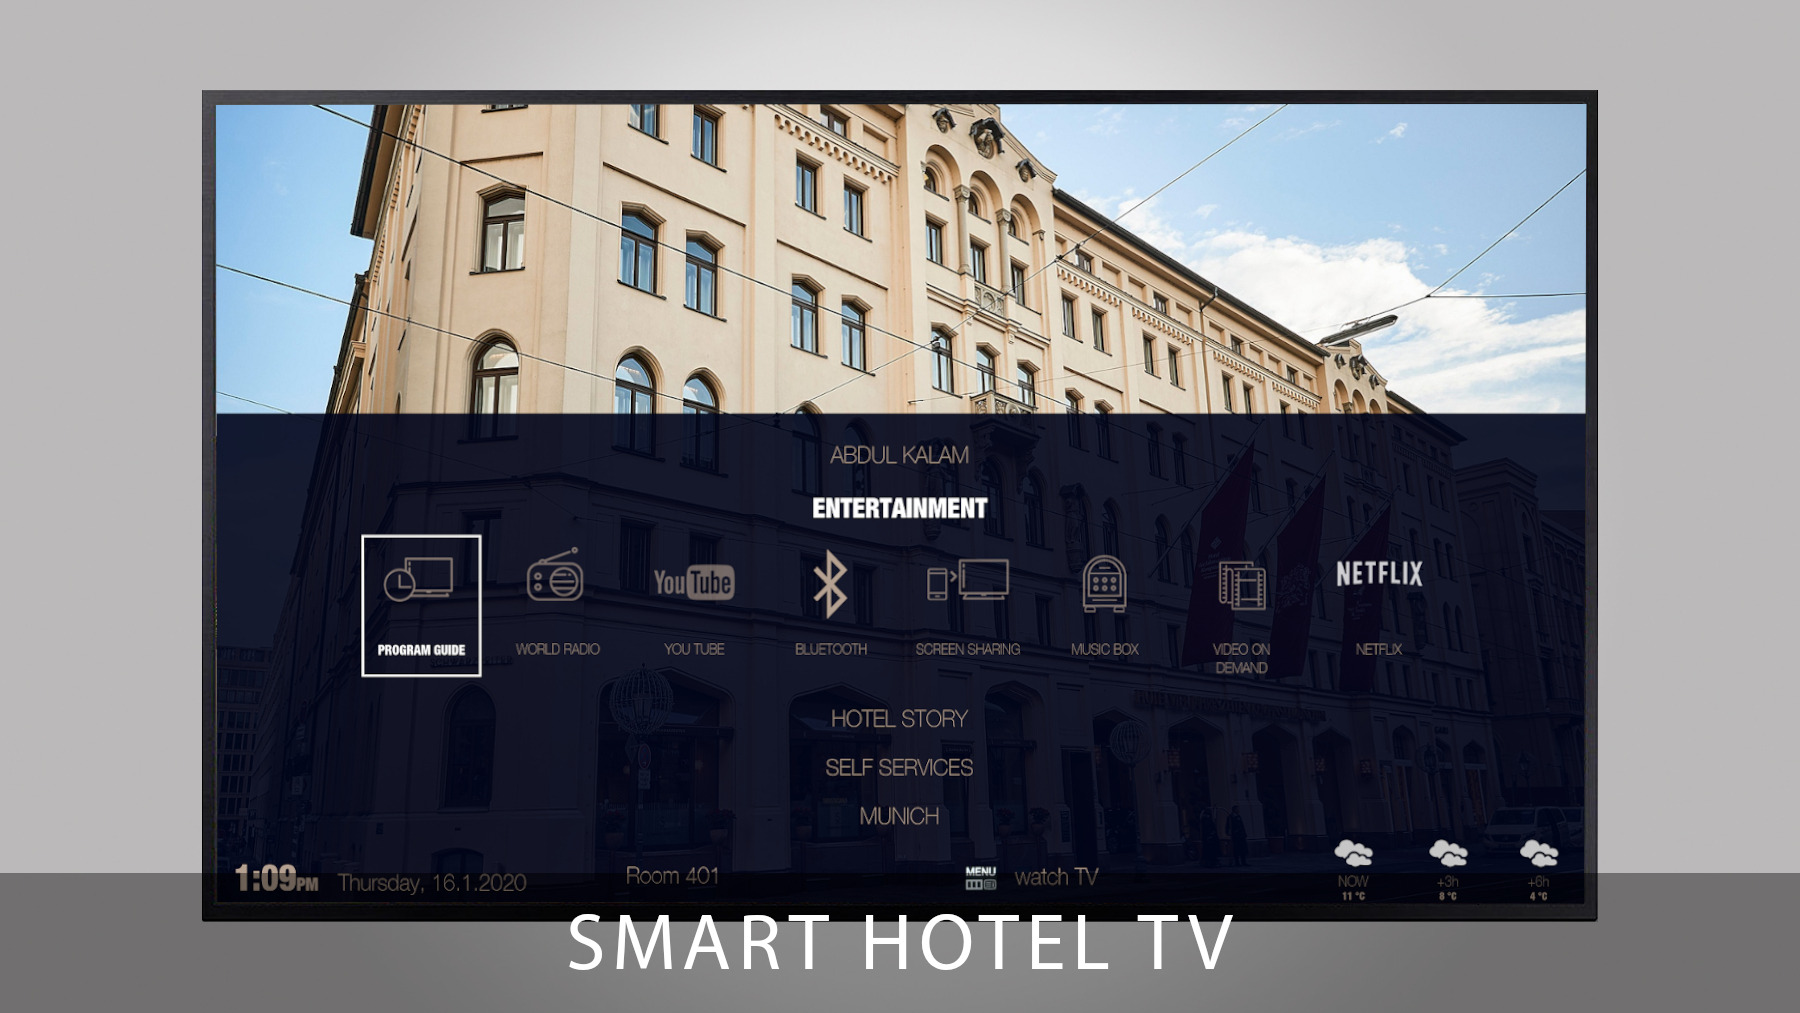 Onlinedemo - Smart Hotel TV Apps